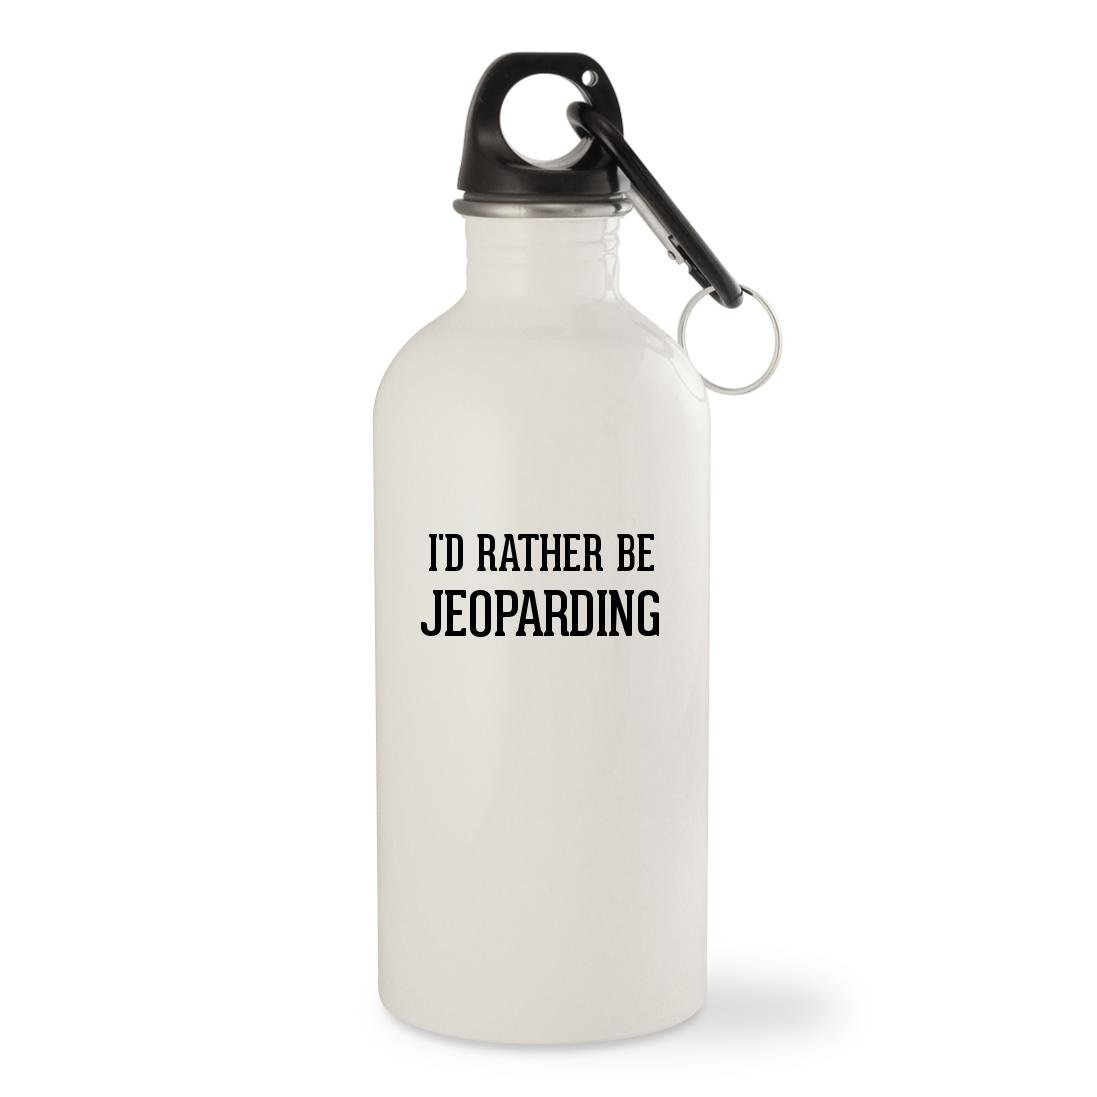 I'd Rather Be JEOPARDING - White 20oz Stainless Steel Water Bottle with Carabiner